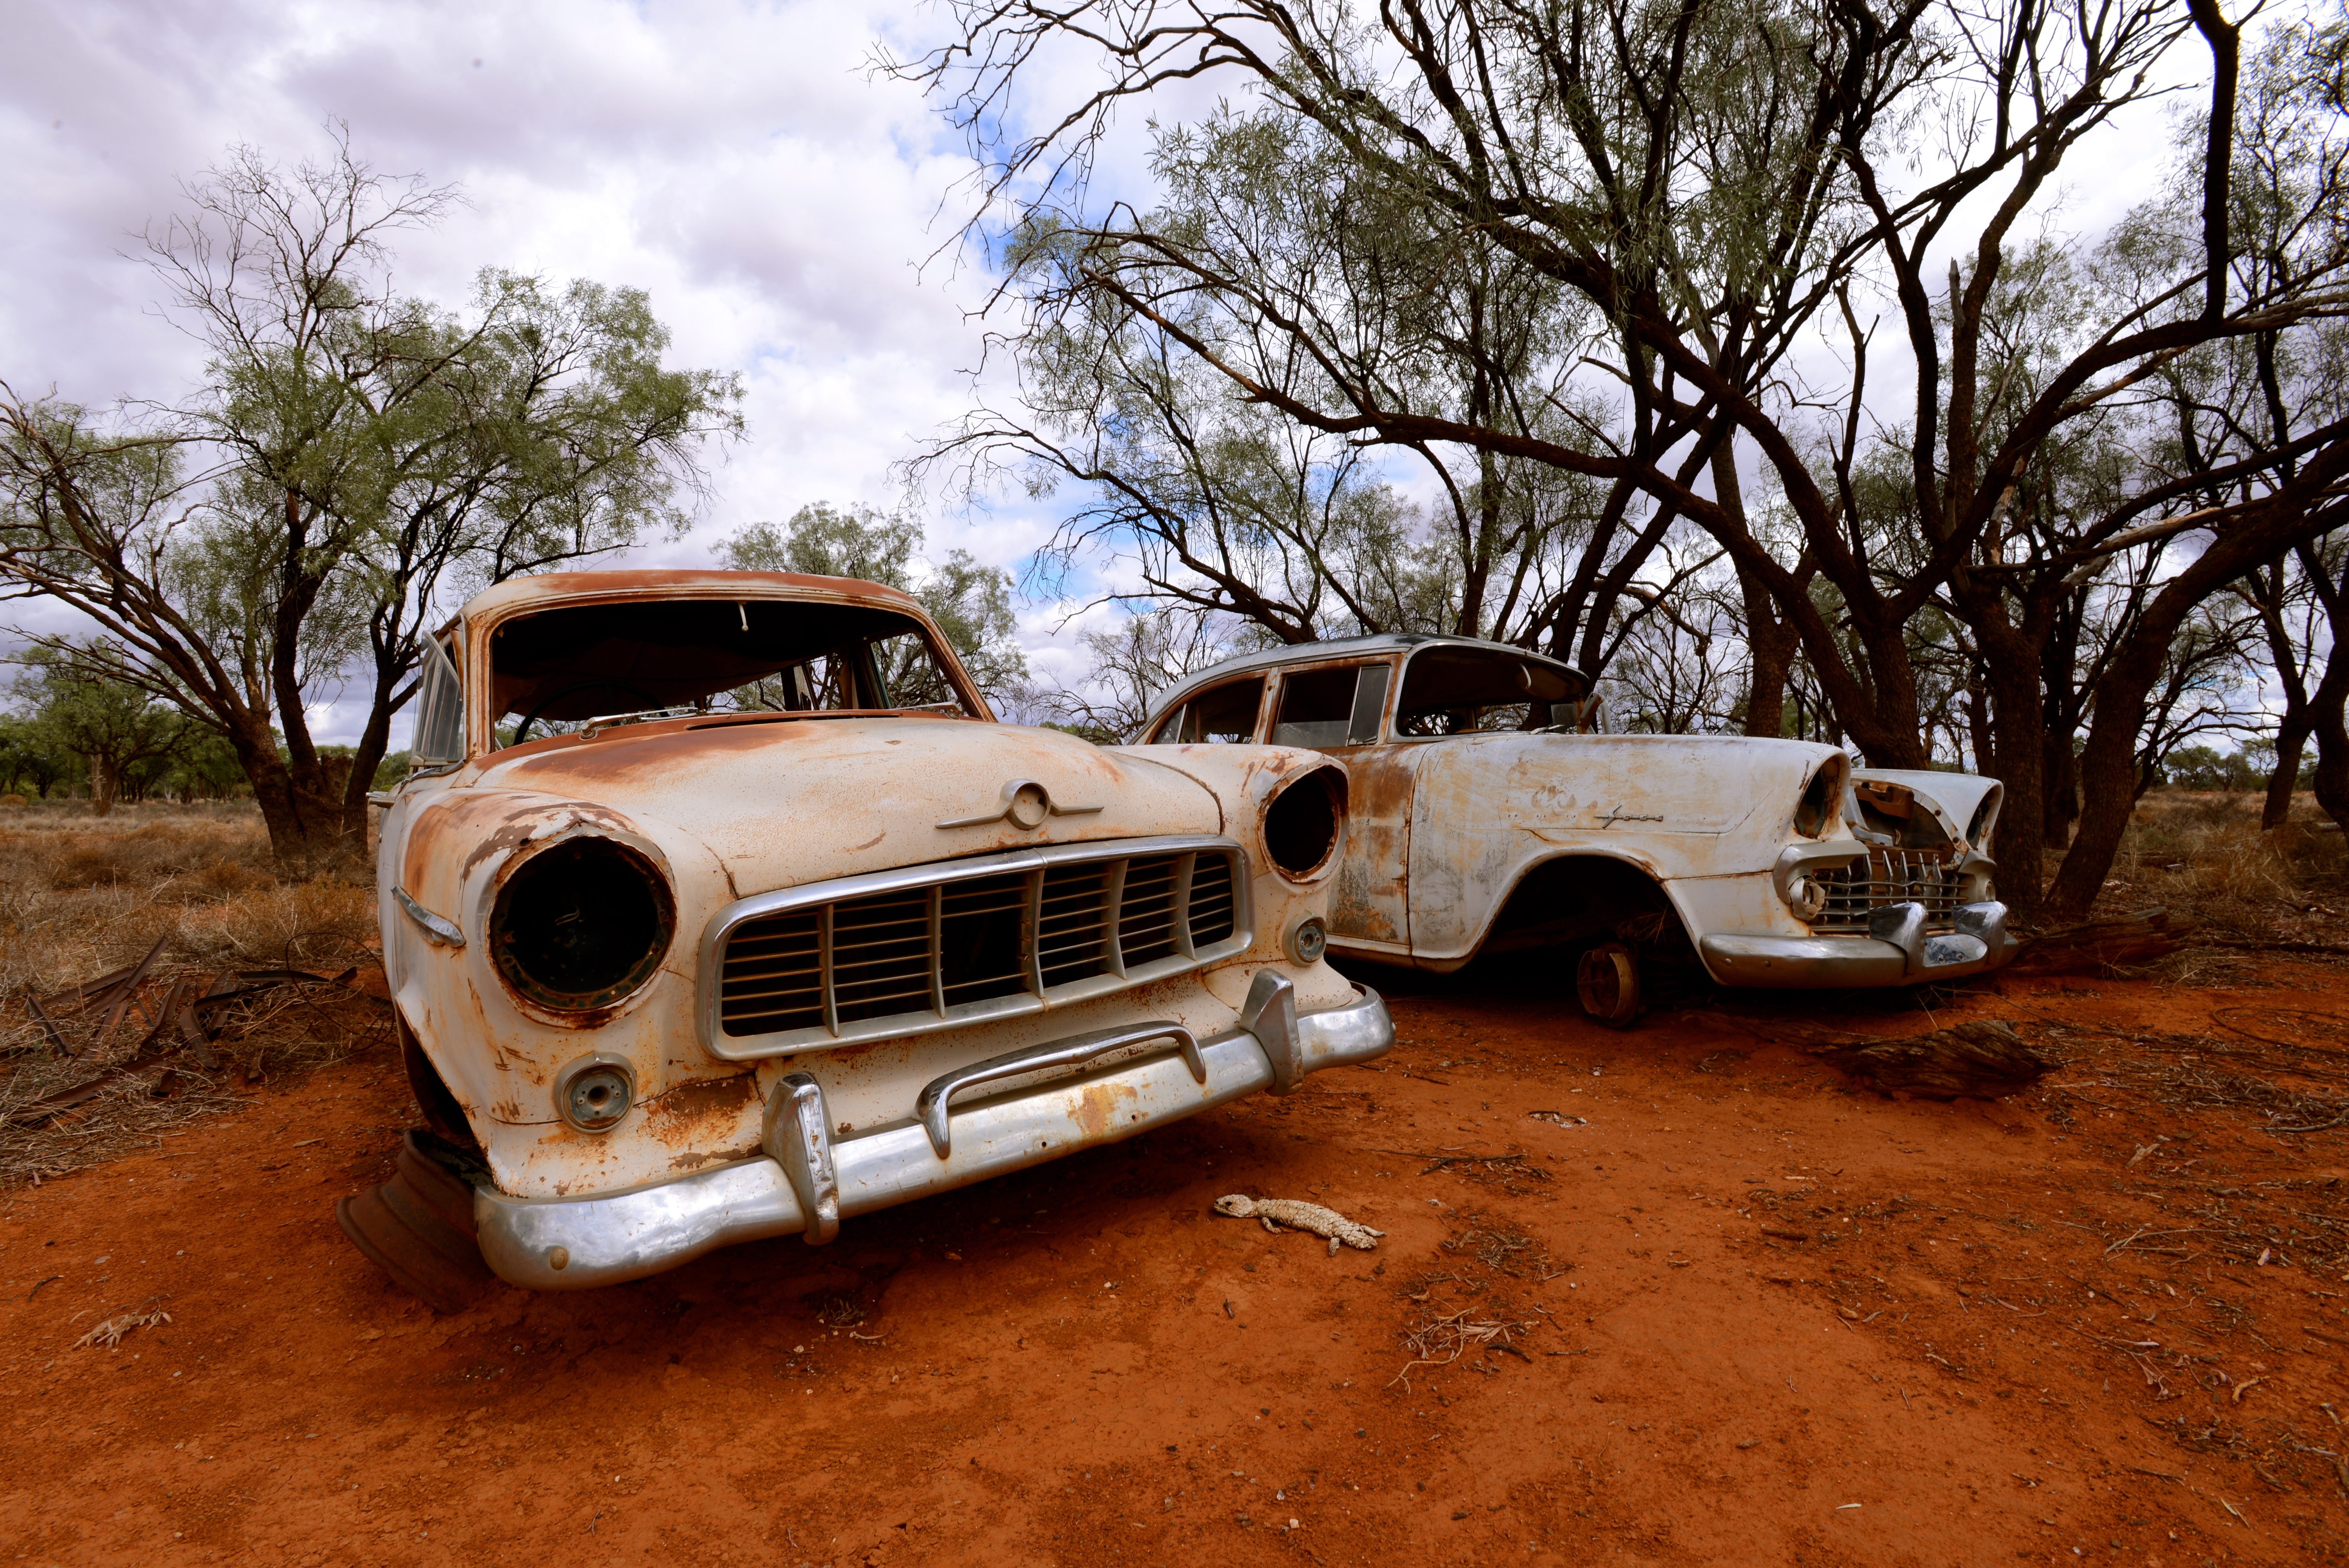 dsc_0199.jpg (6016×4016) | Cars / Holden Aust. | Pinterest | Cars